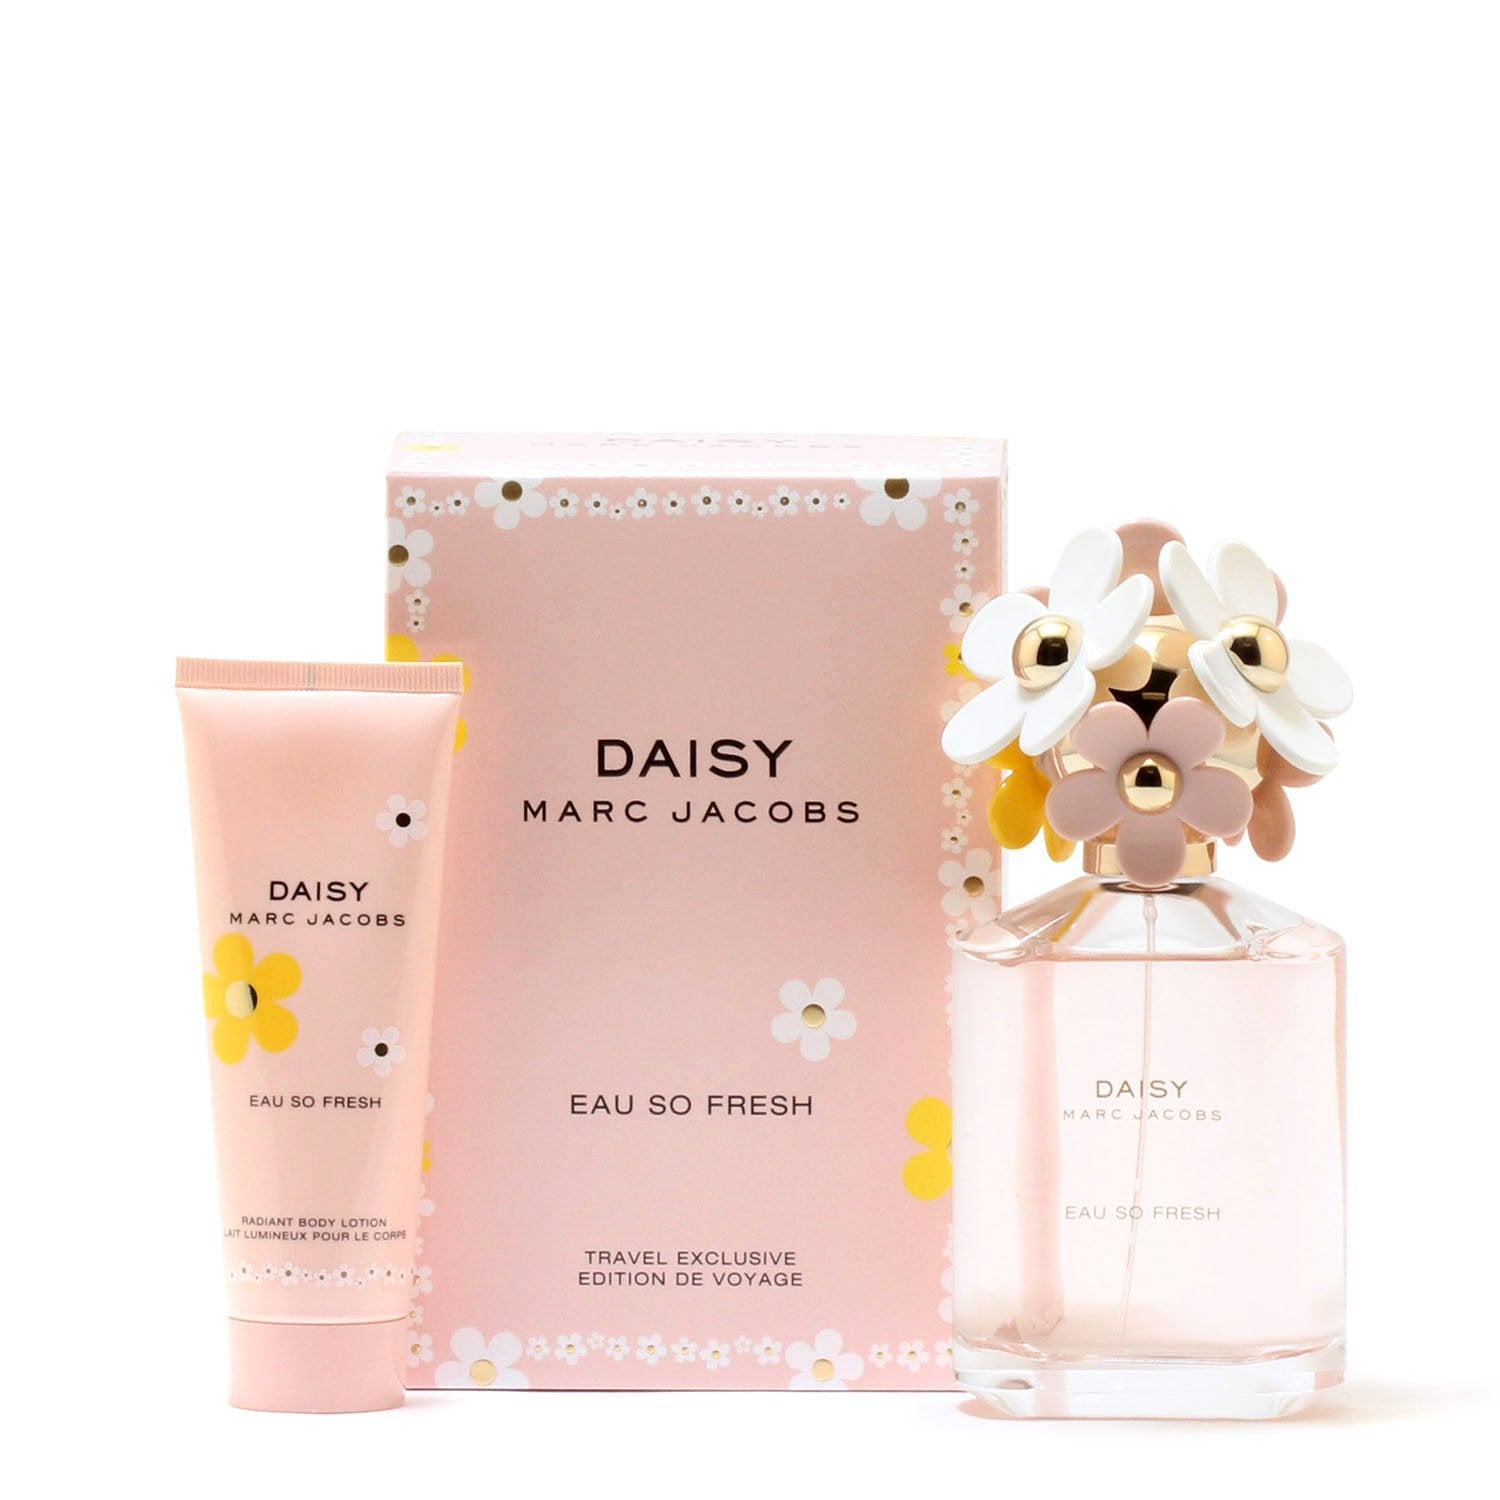 3a0de5a77f7e Perfume Sets - DAISY EAU SO FRESH FOR WOMEN BY MARC JACOBS - TRAVEL EDITION  GIFT